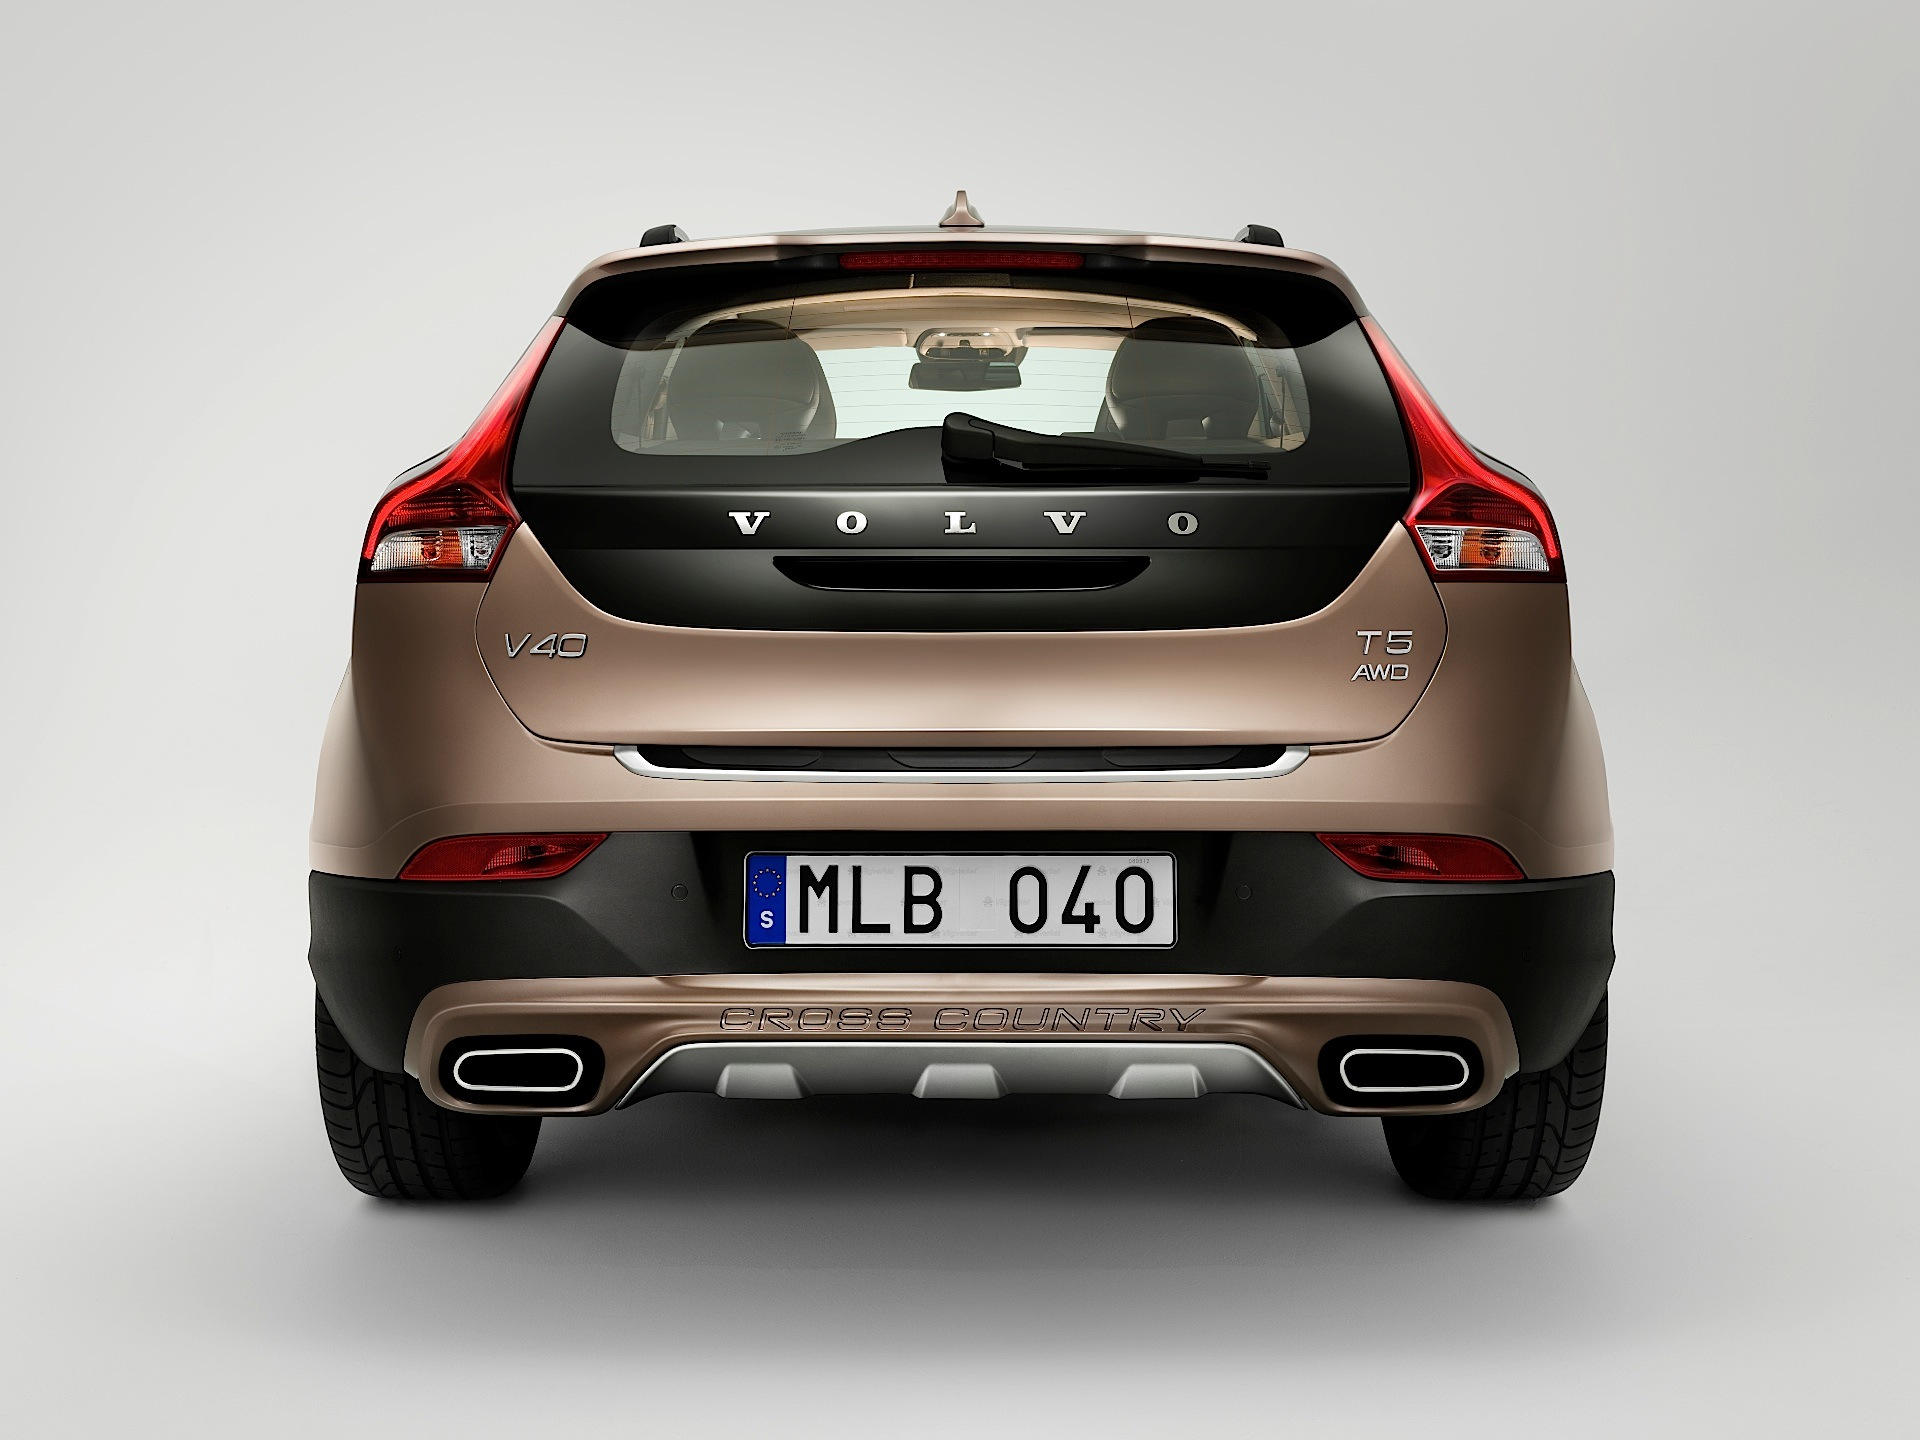 volvo v40 cross country specs photos 2012 2013 2014 2015 2016 autoevolution. Black Bedroom Furniture Sets. Home Design Ideas